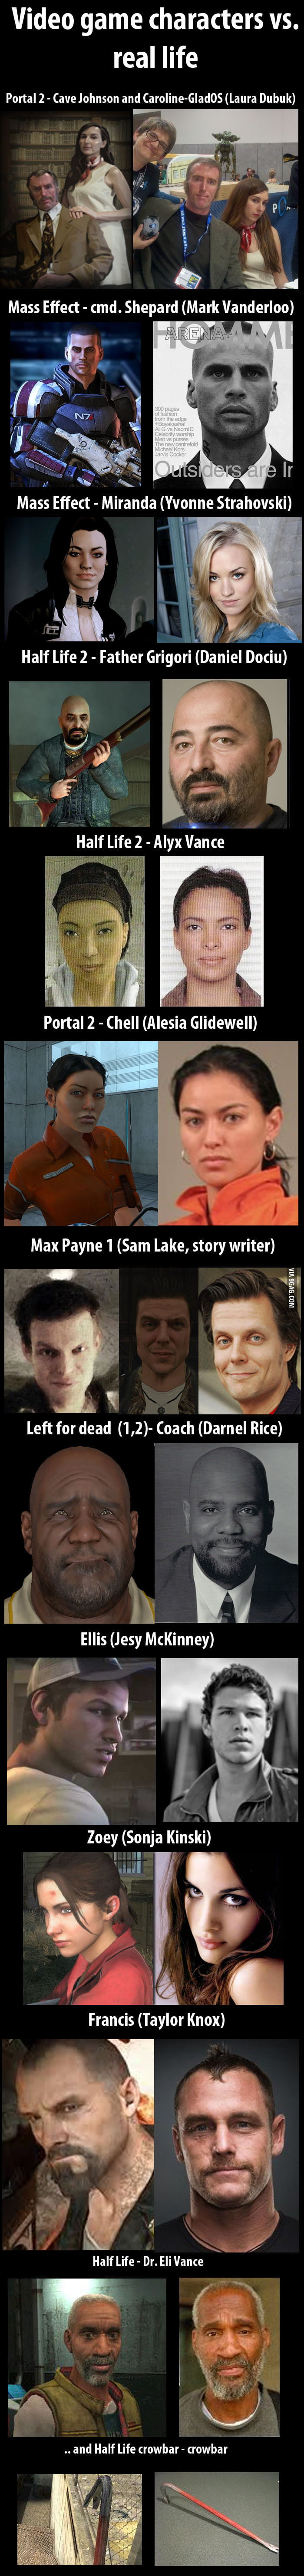 Video game characters vs. Real life